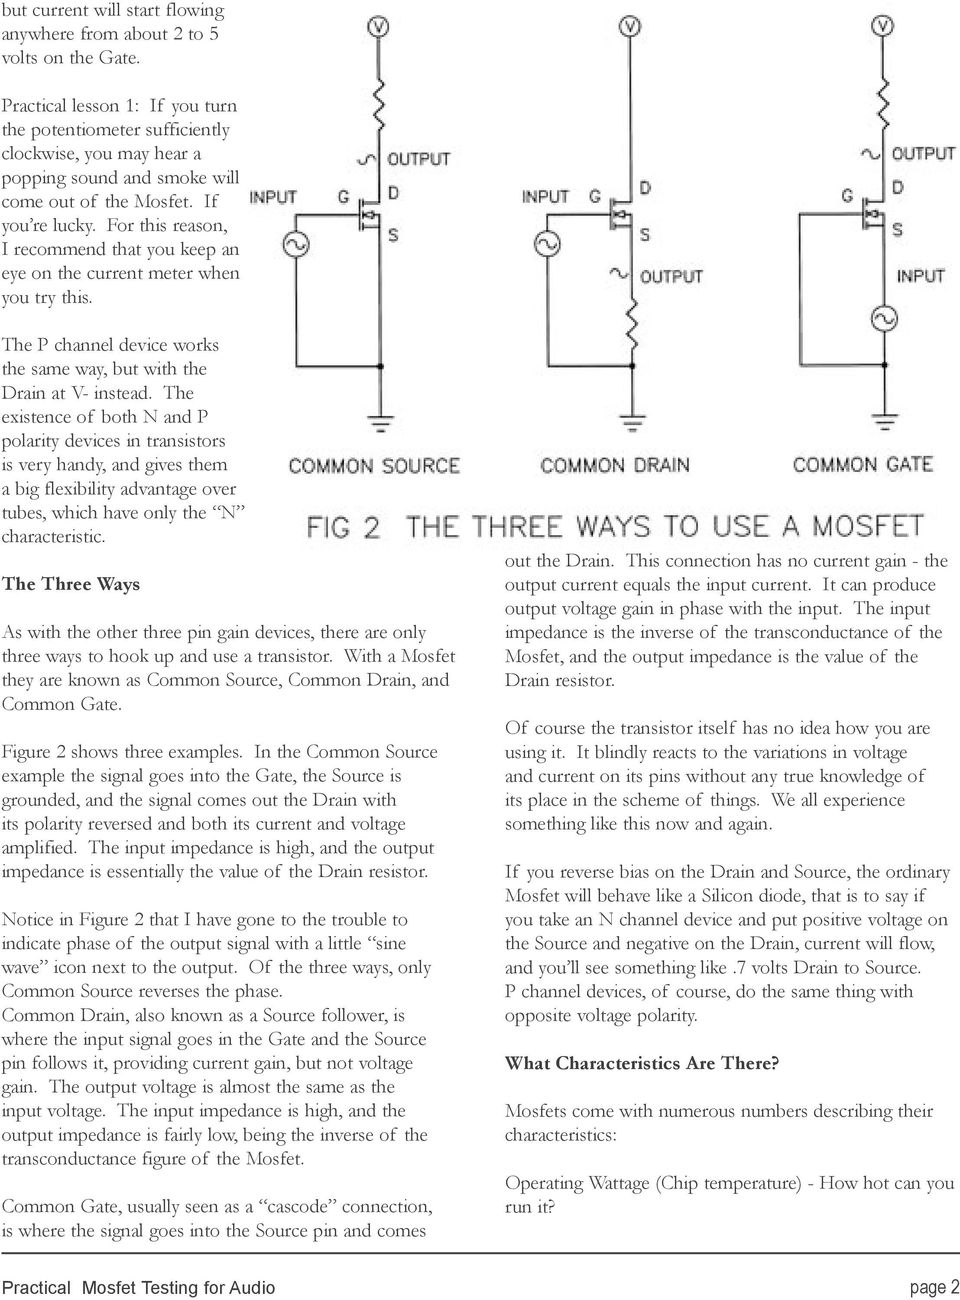 Practical Mosfet Testing For Audio Pdf Transistors Pchannel Drainsource Polarity In Power Switch This Reason I Recommend That You Keep An Eye On The Current Meter When